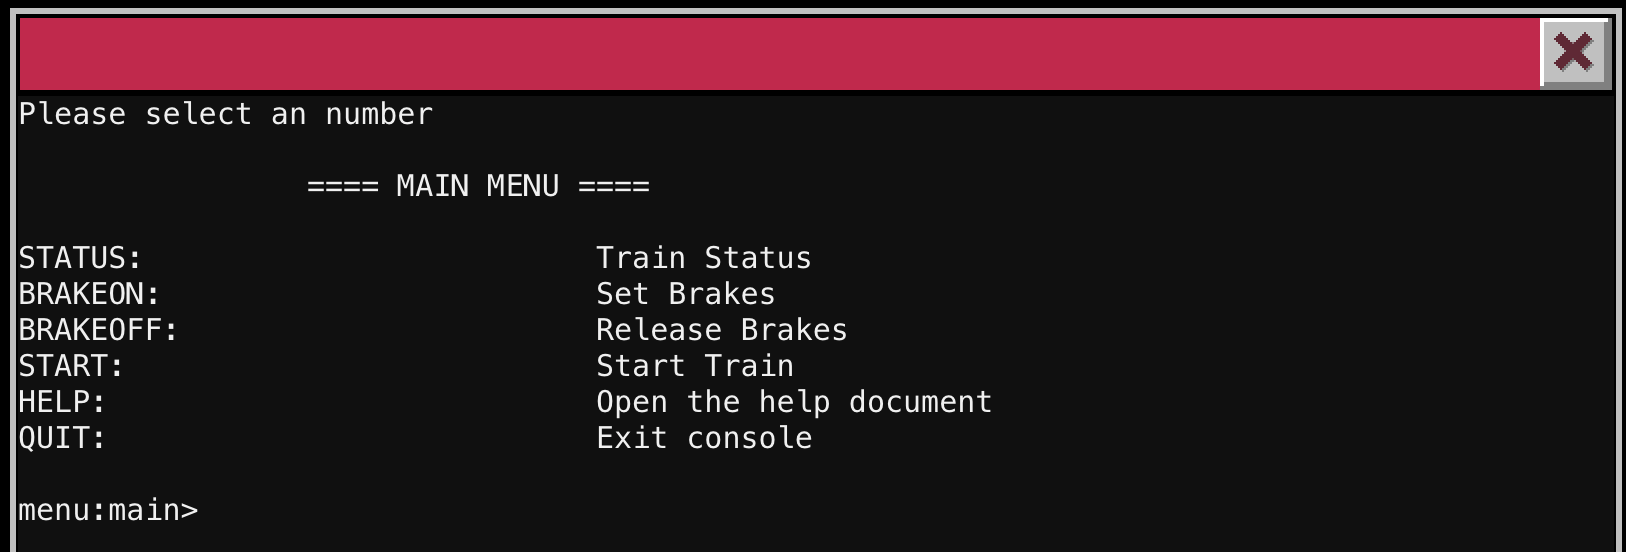 Train Management Interface